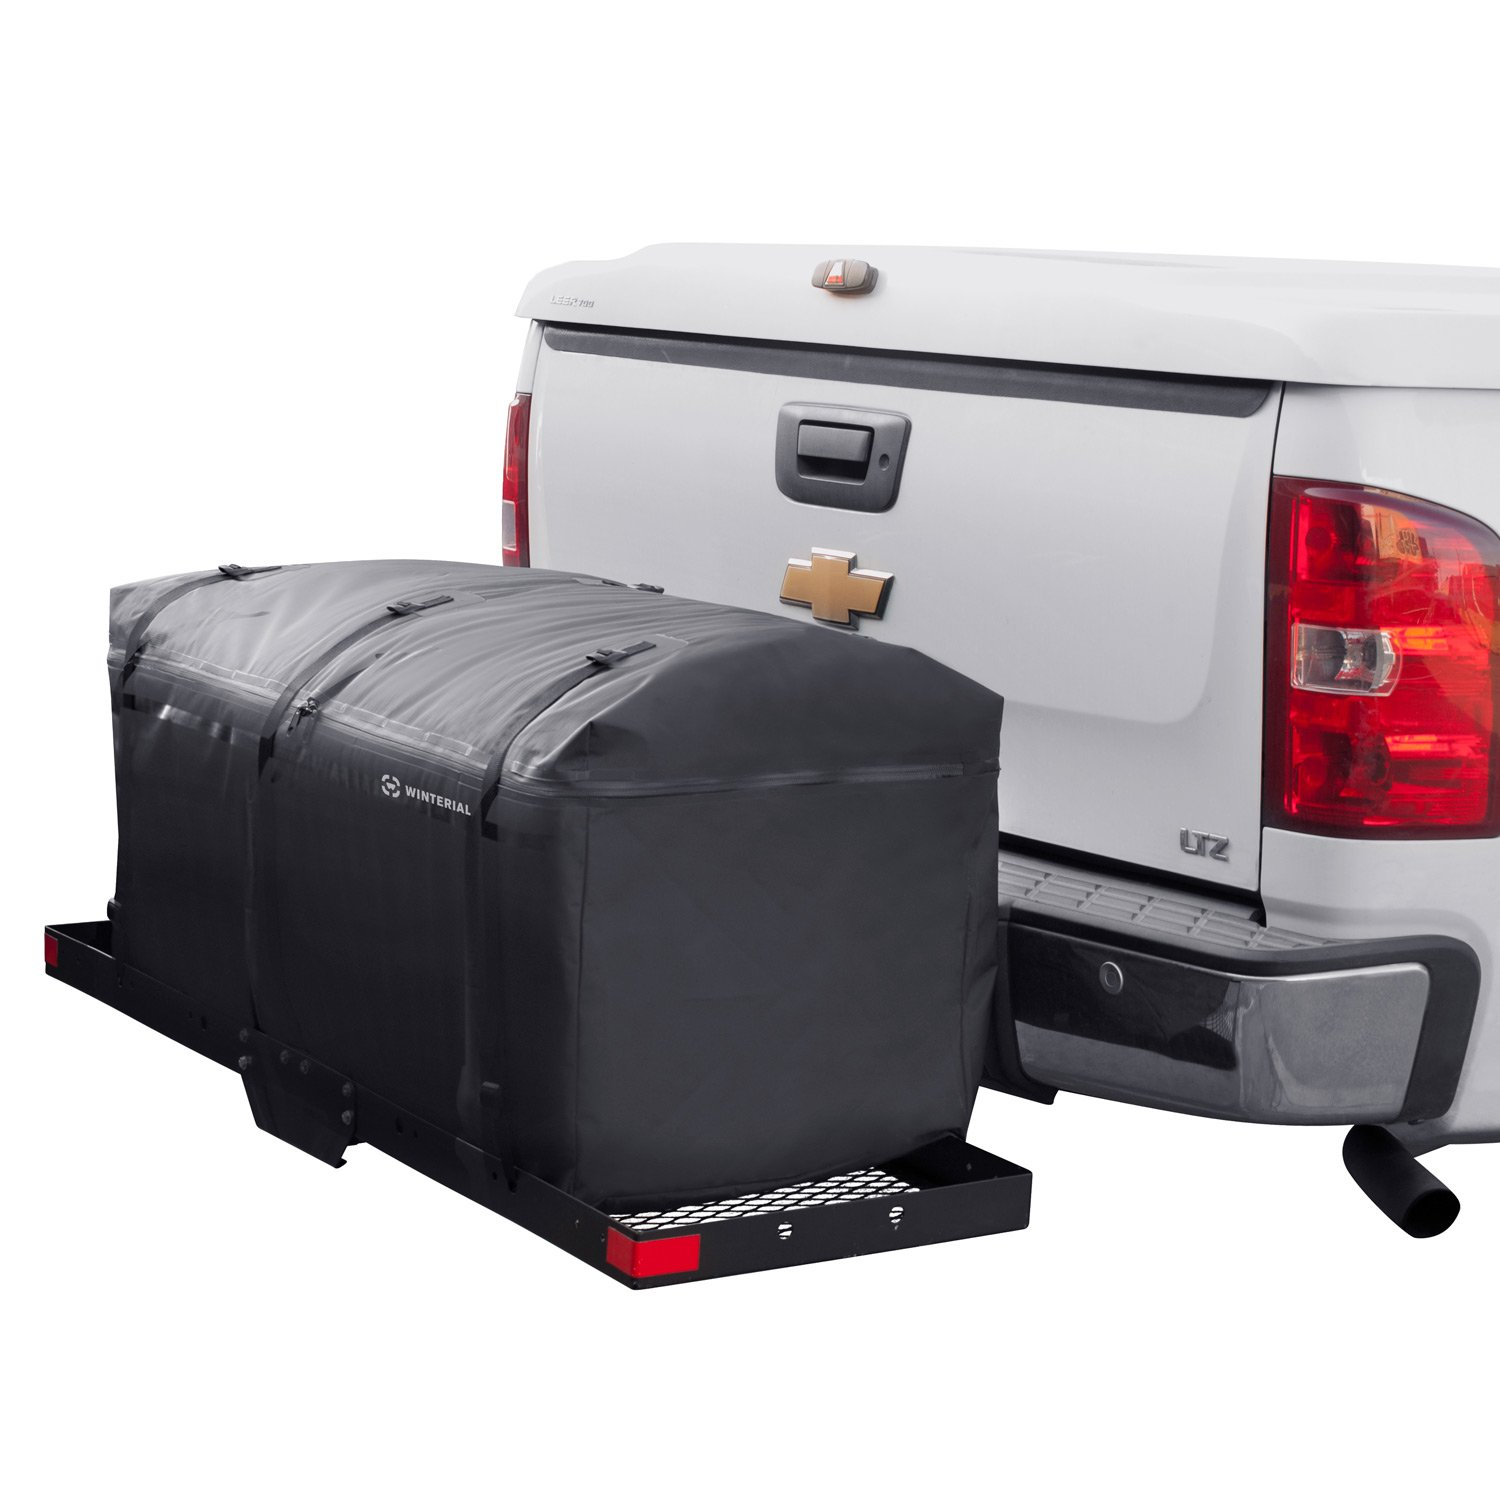 Winterial Hitch Cargo Carrier Bag. Expandable, Road Trip Water Resistant, Weatherproof, Cargo Bag Rain, Snow, Dirt by Winterial